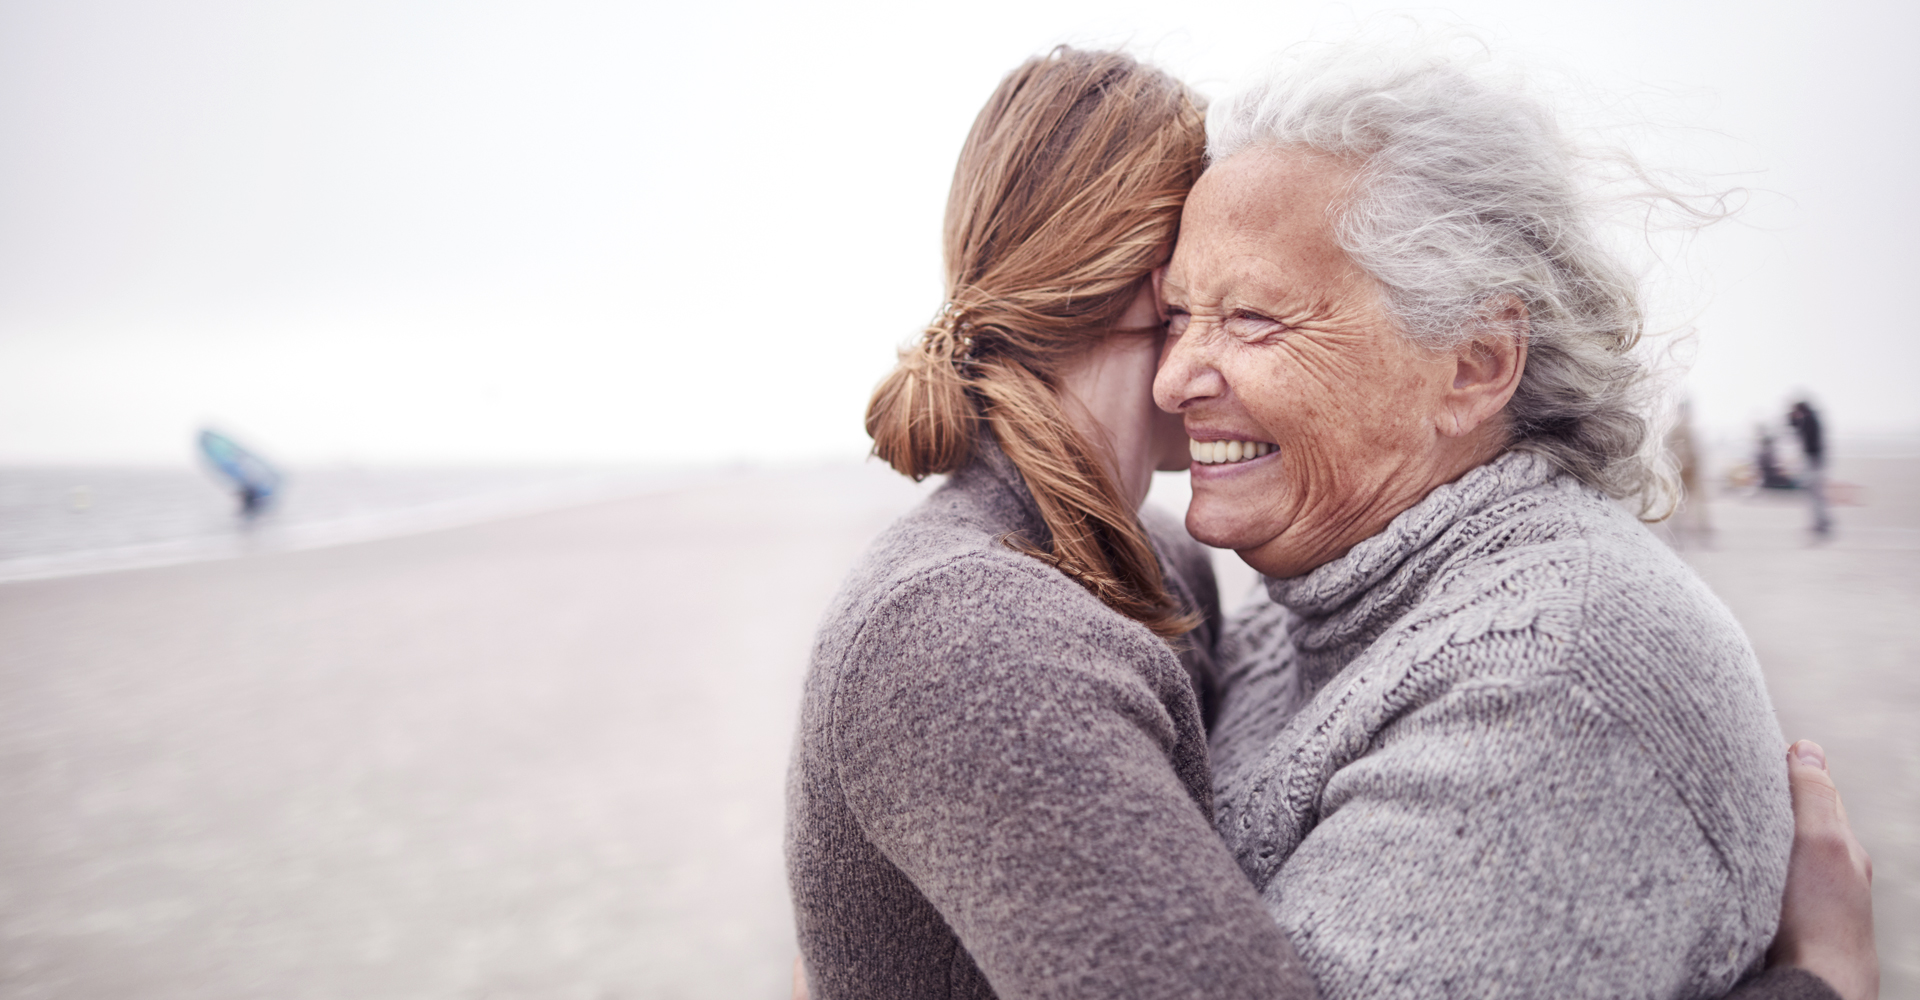 Top 5 Security Tips for Seniors | Avast